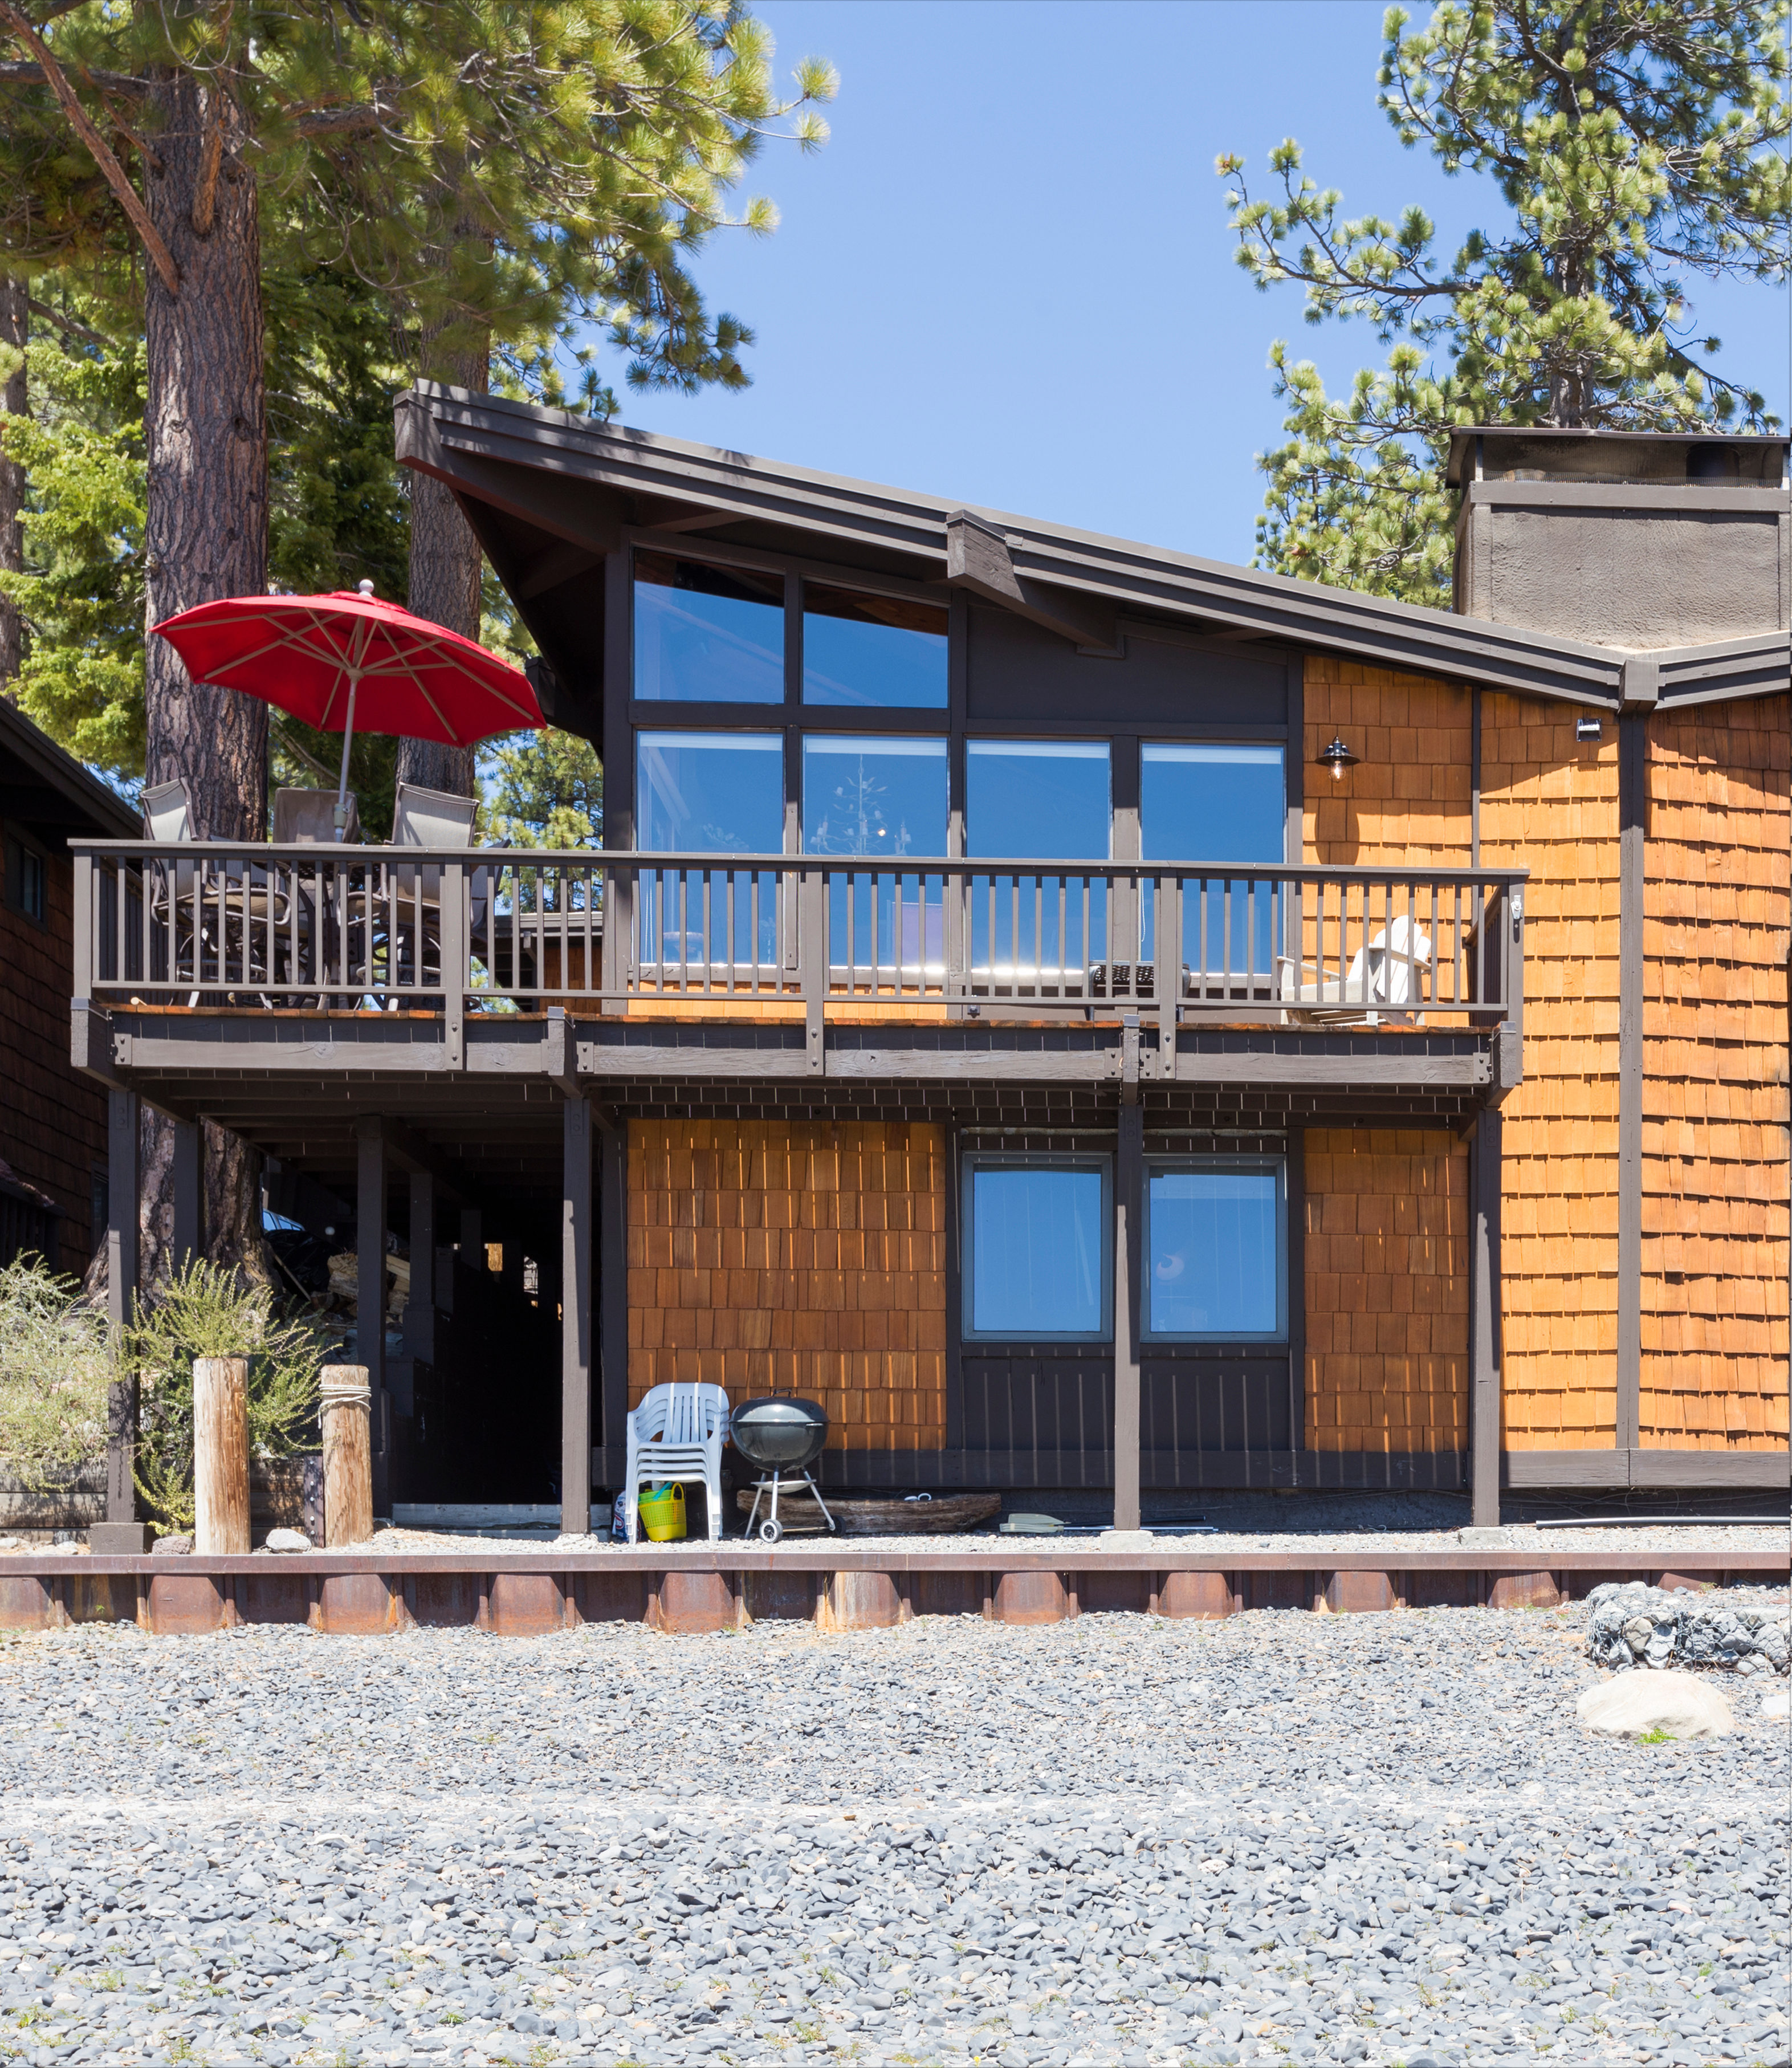 Lake Tahoe Vacation Rentals On The Water: Star Harbor Lakefront #9